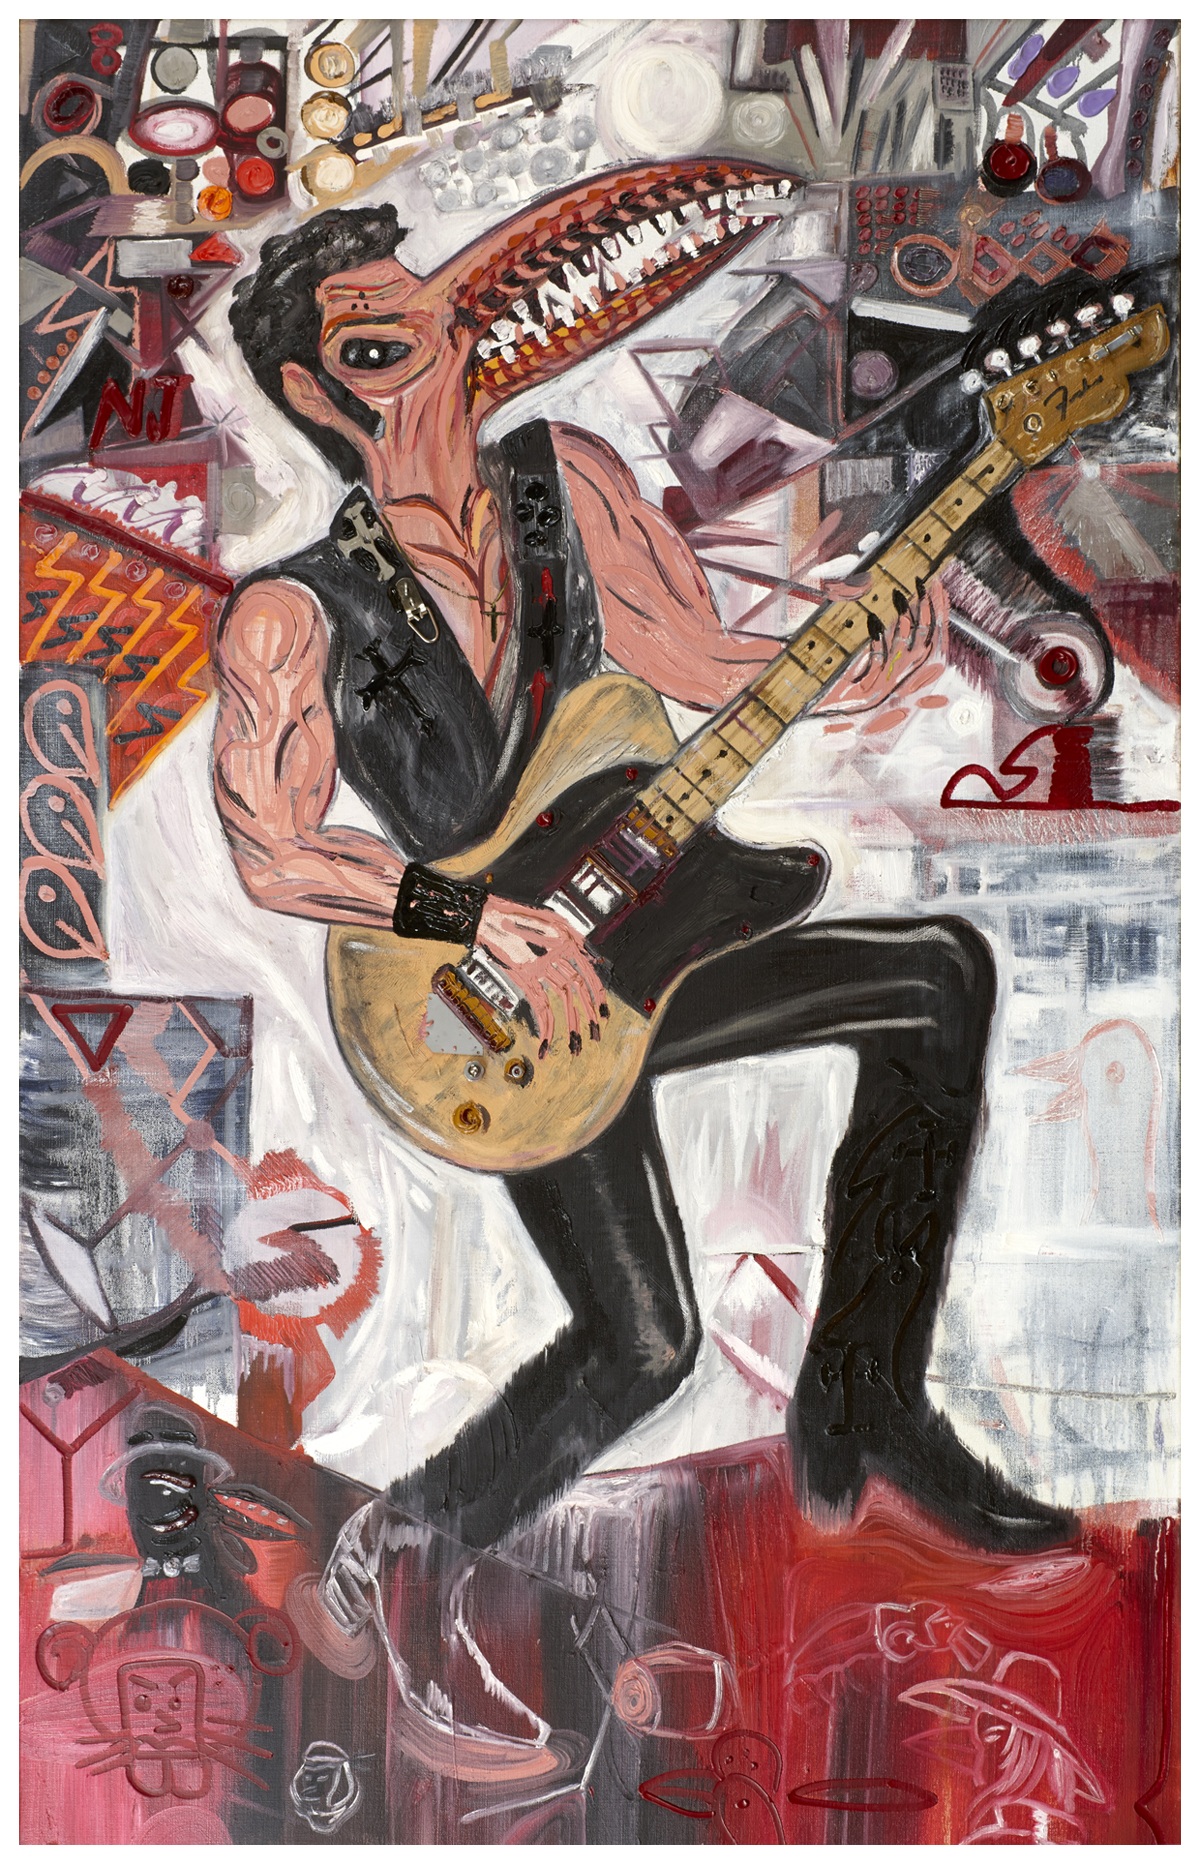 Abdul Vas. Rock ´N´ Roll. Bruce Springsteen The Boss, 2006